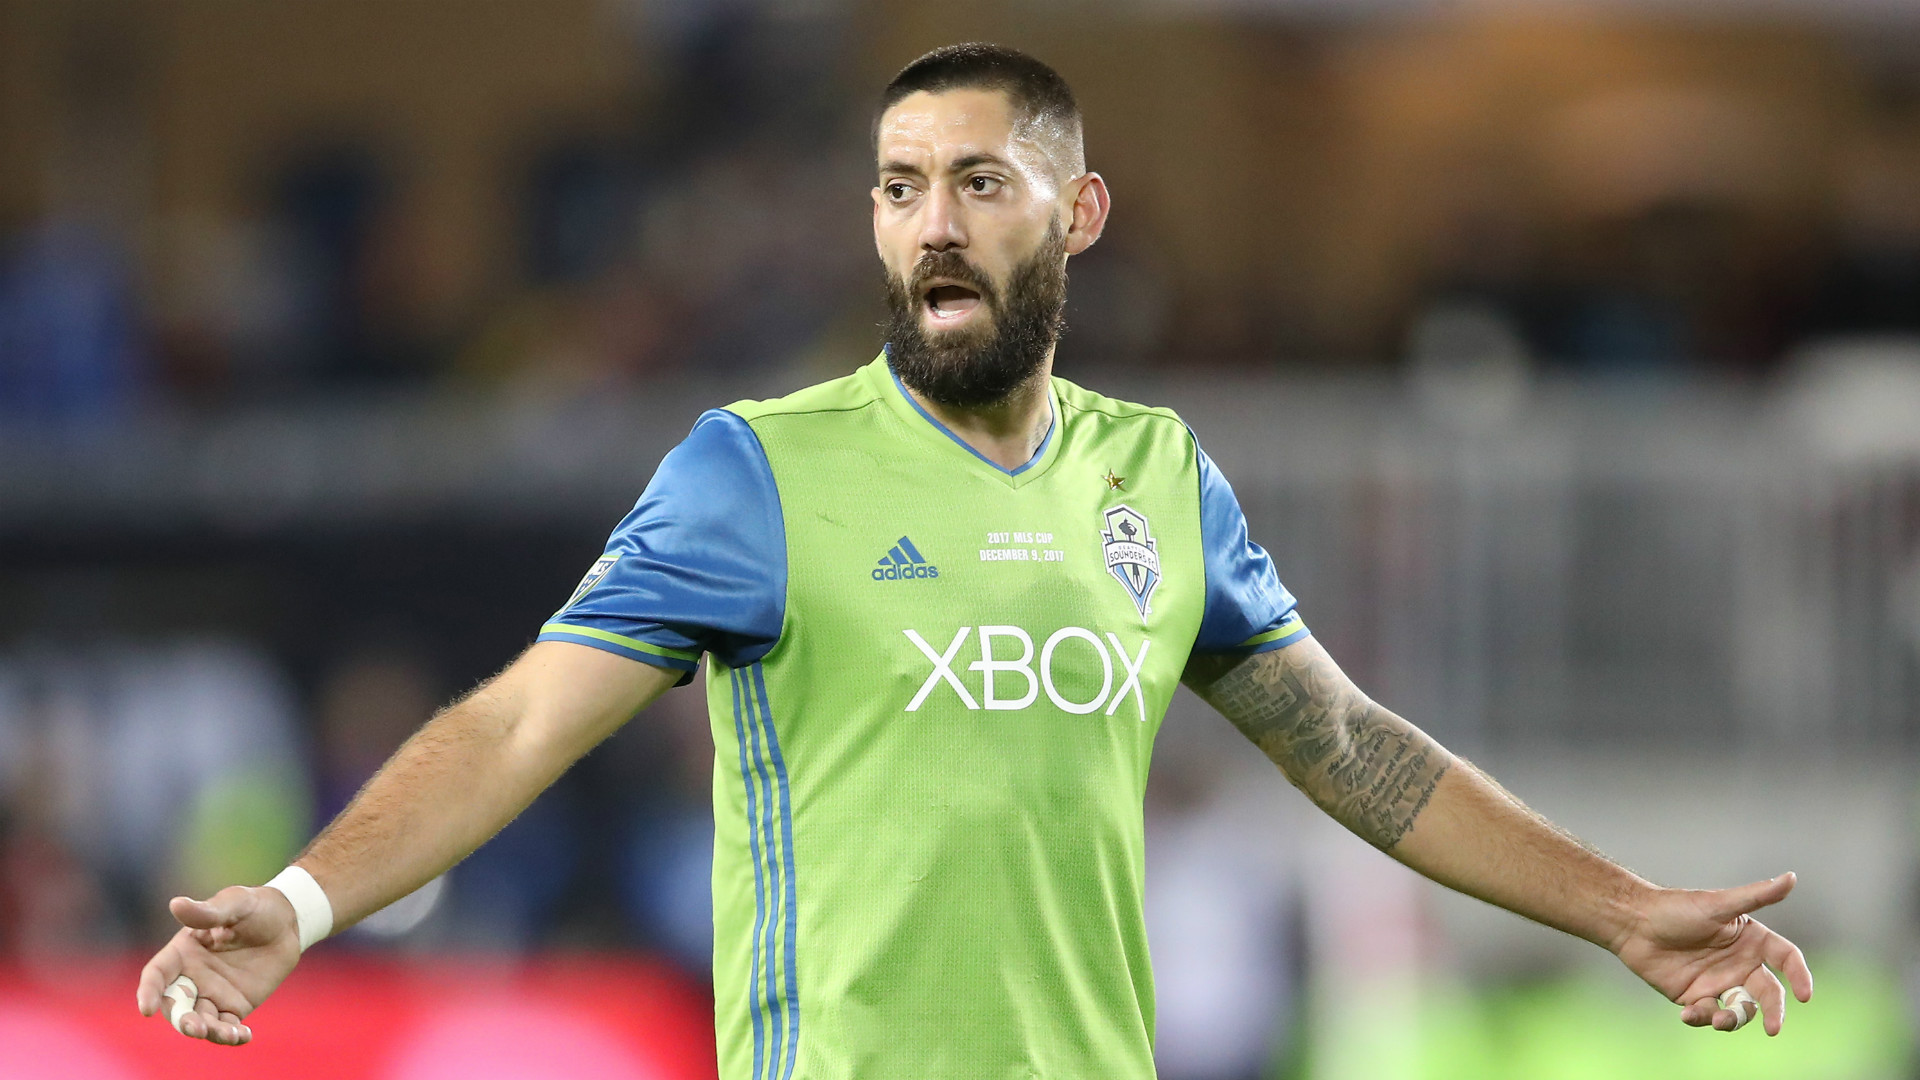 Clint-dempsey-mls-seattle-sounders-12092017_c4j5zso6gao11i9s9zgq9de8t